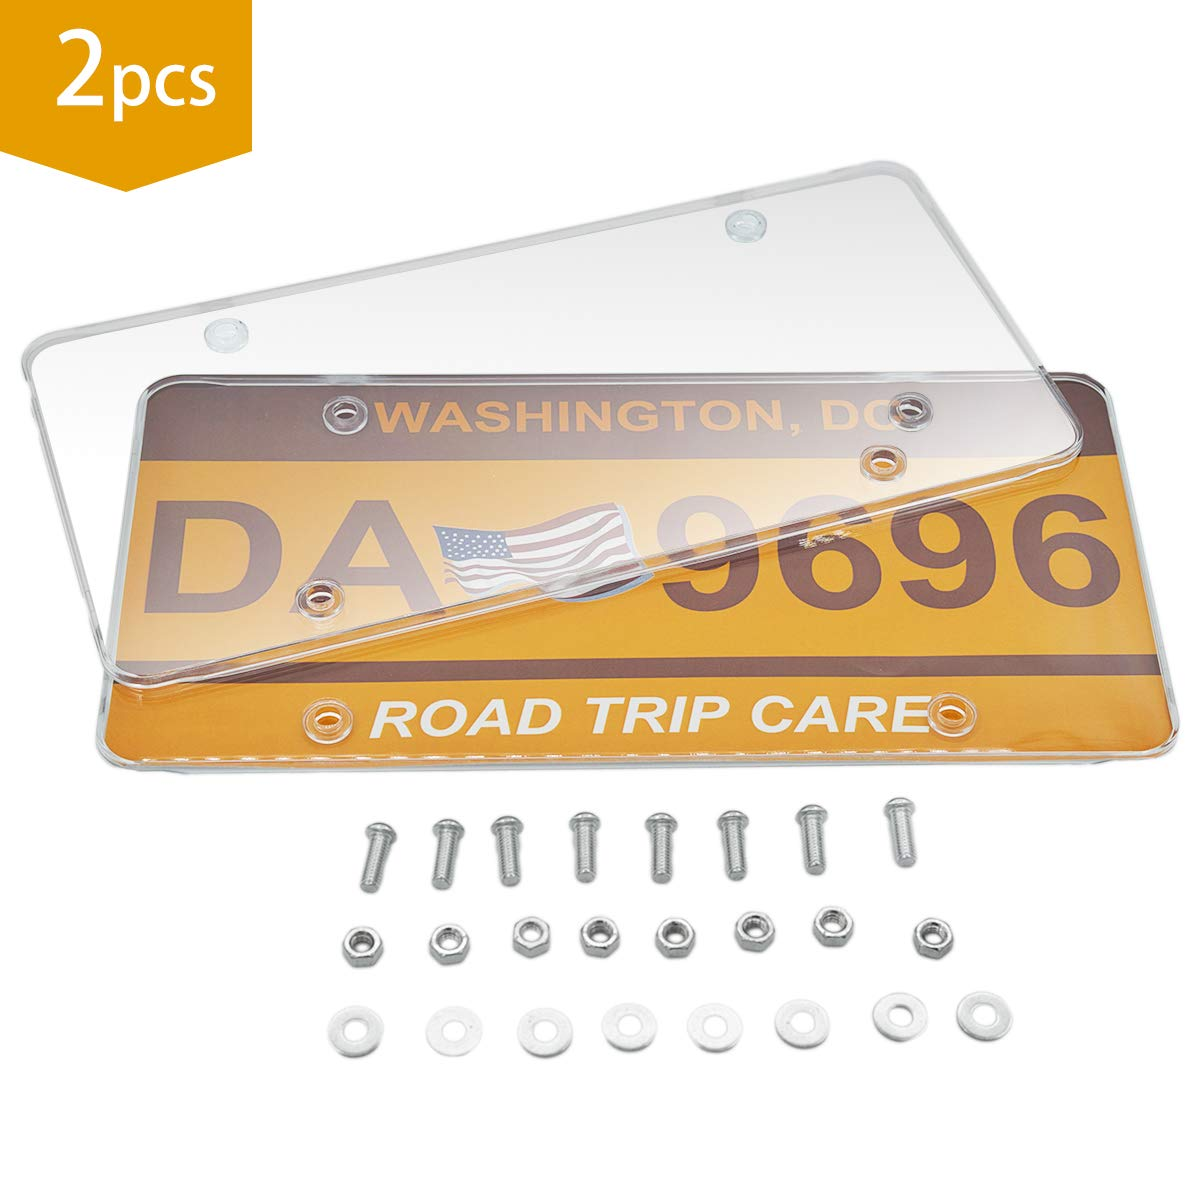 Screws Included Back License Plates Smile Turtle Car License Plates Shields 2 Pack Clear Flat Design Novelty Plate Covers to Fit Any Standard US Plates Unbreakable Frame Covers to Protect Front